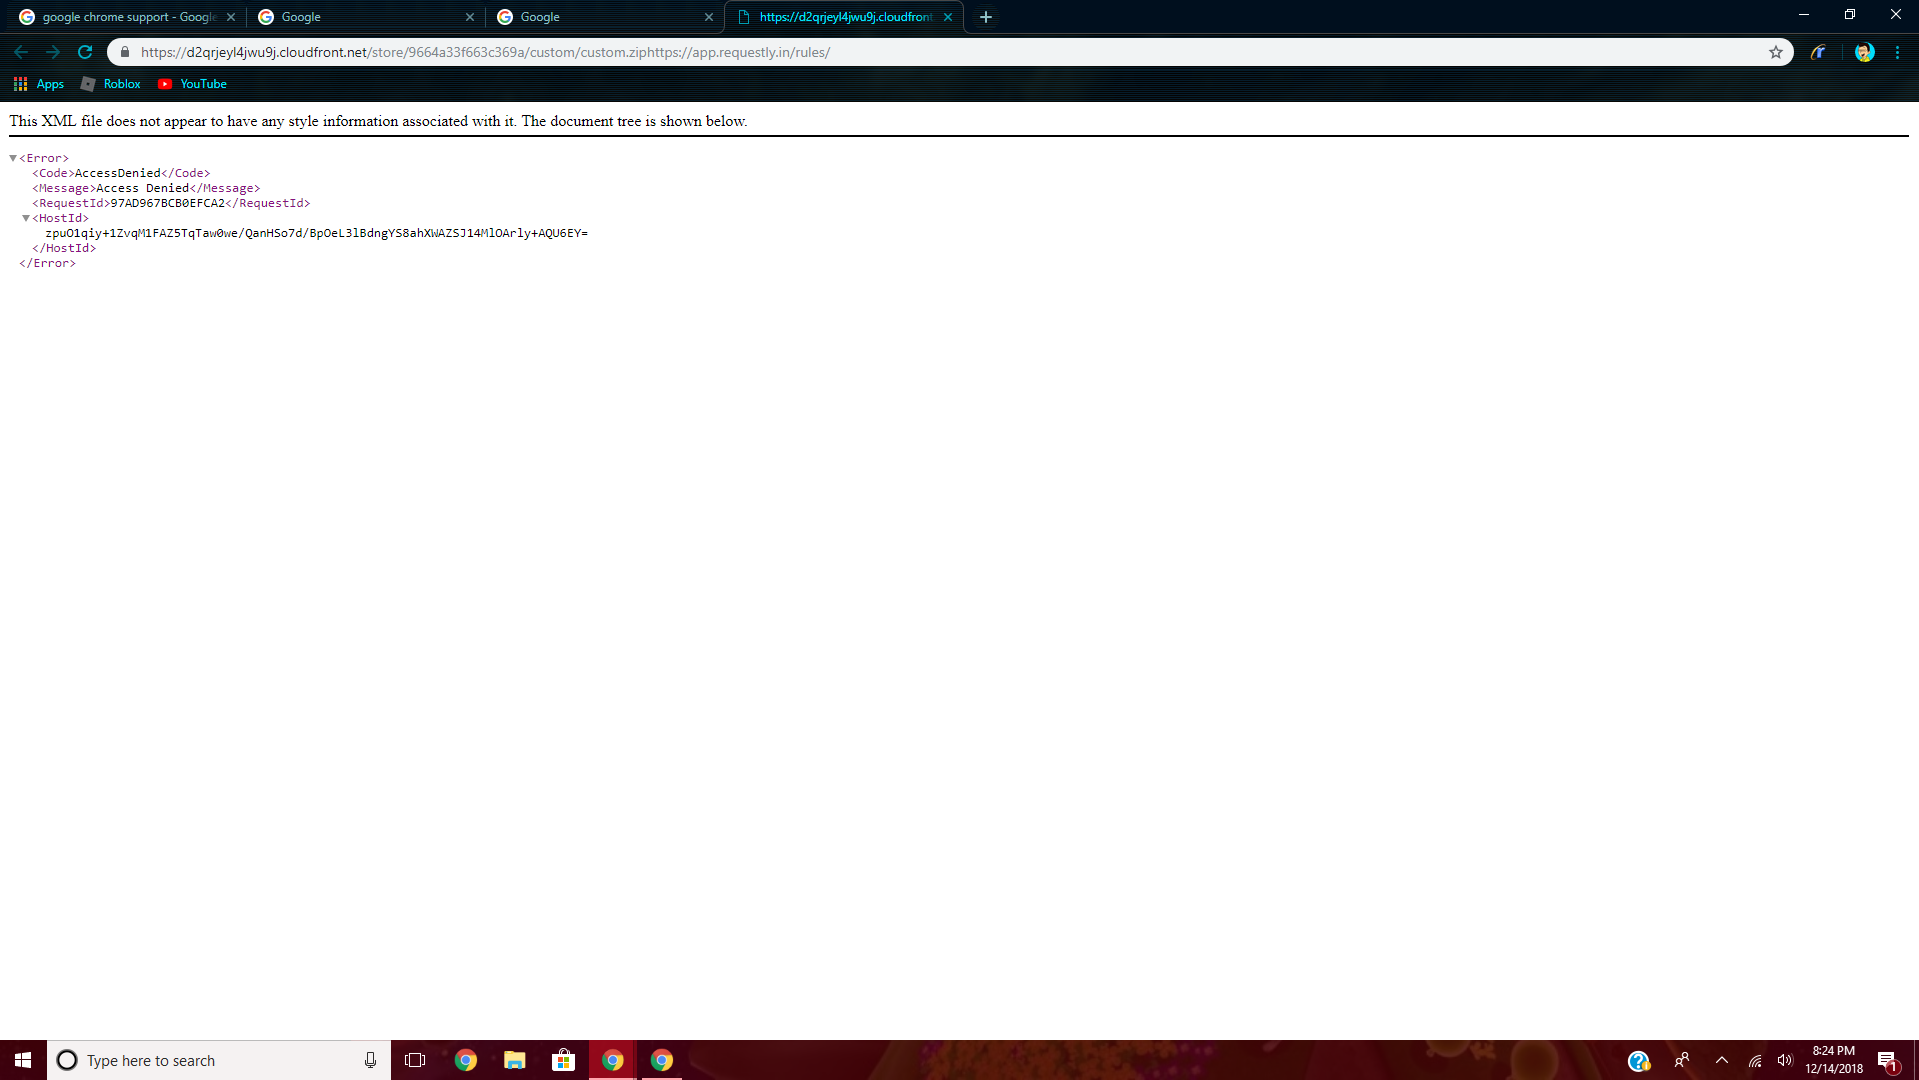 This is A big problem with my chrome account and i can't fix it